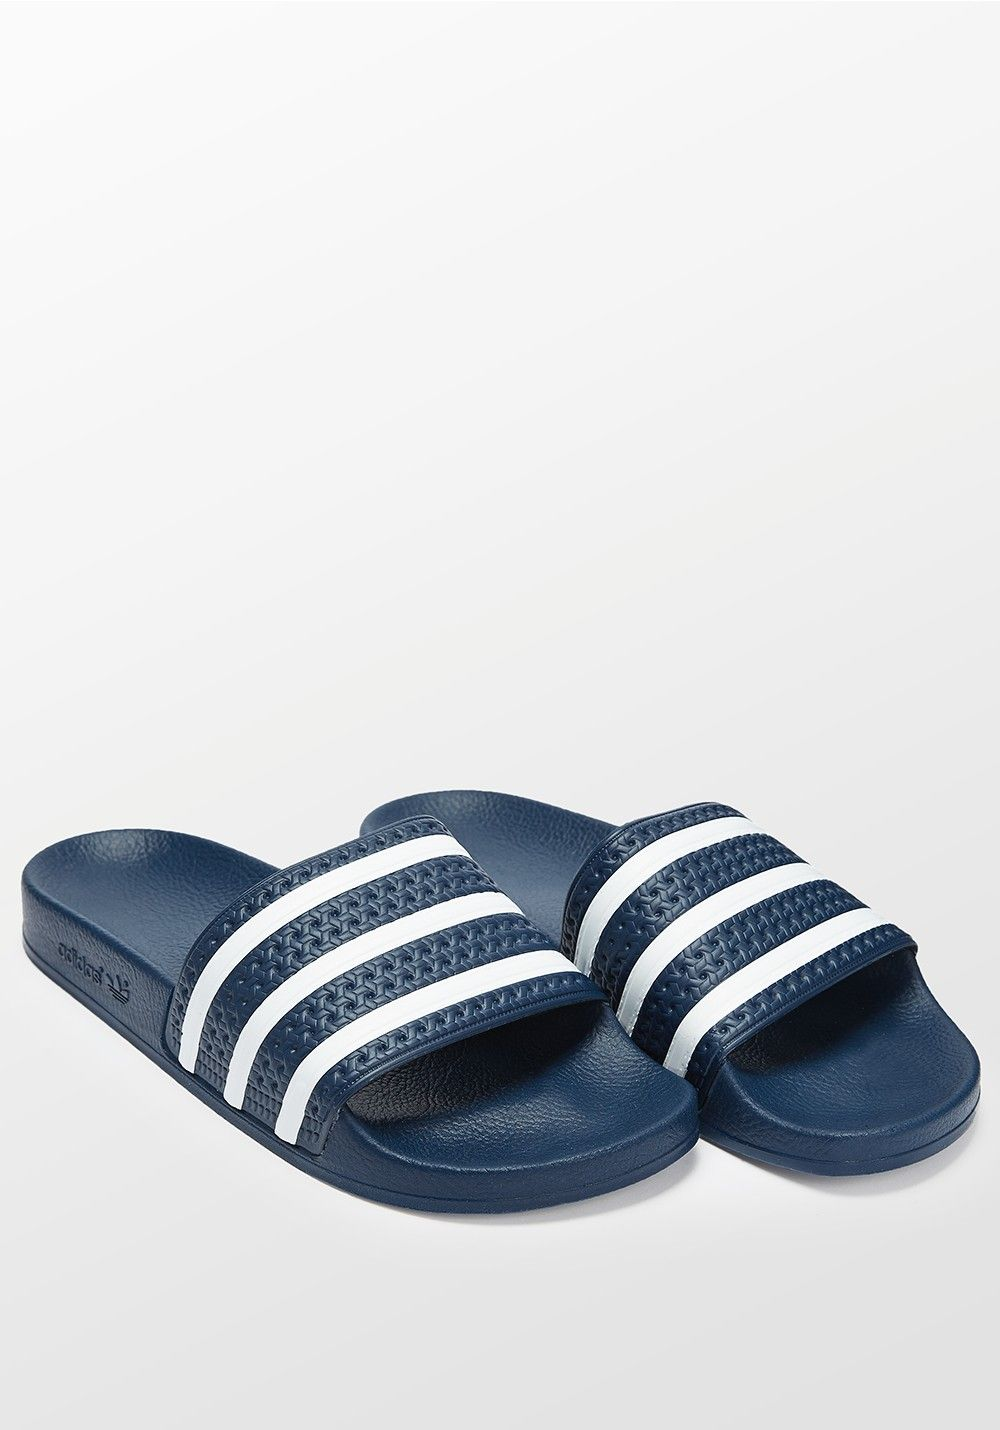 9a90fb677 Adidas Adilette navy blue and white slides Adidas Flip Flops